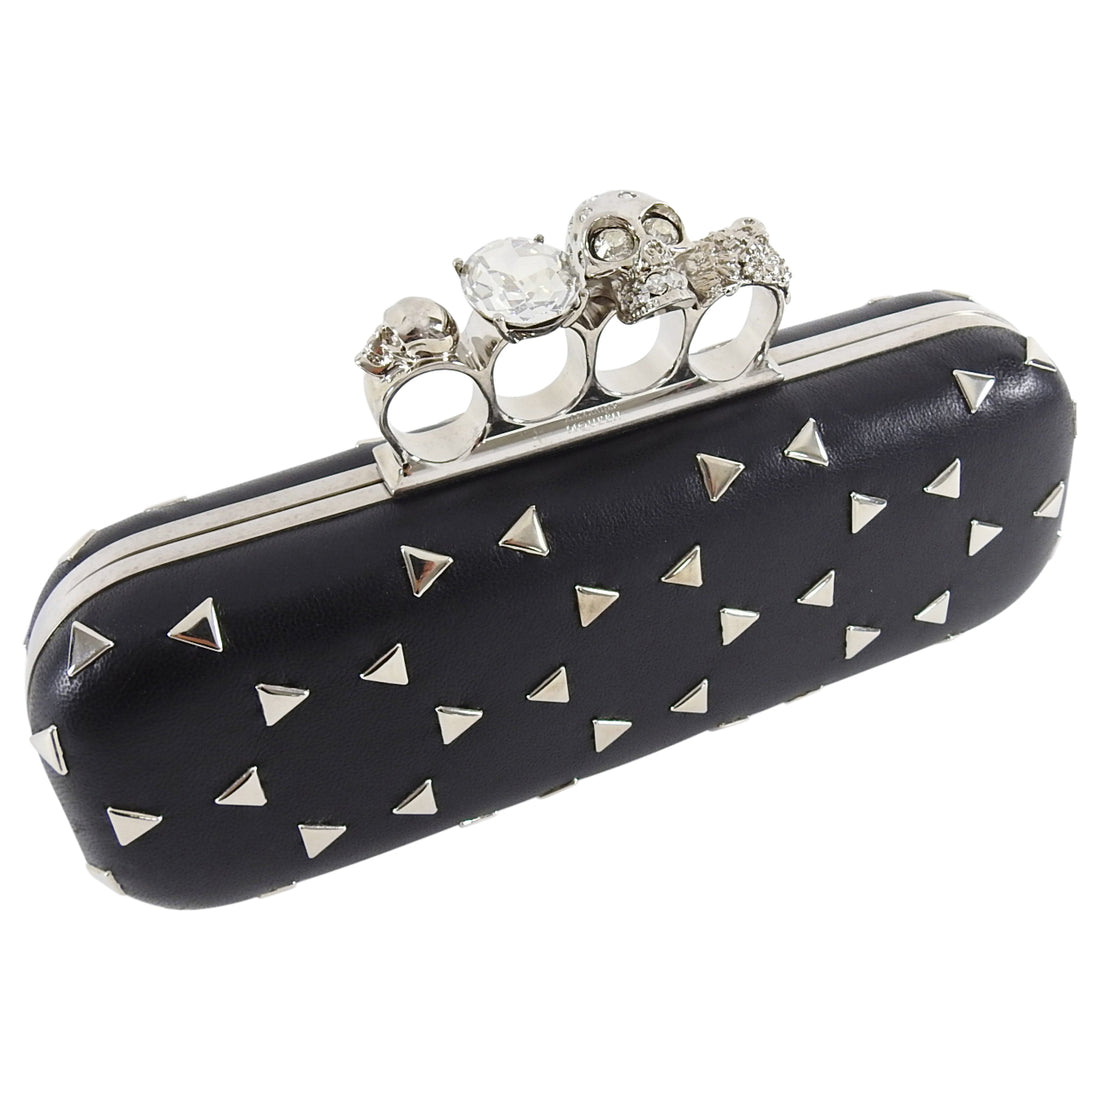 Alexander McQueen Black Stud Knuckle Duster Clutch Bag